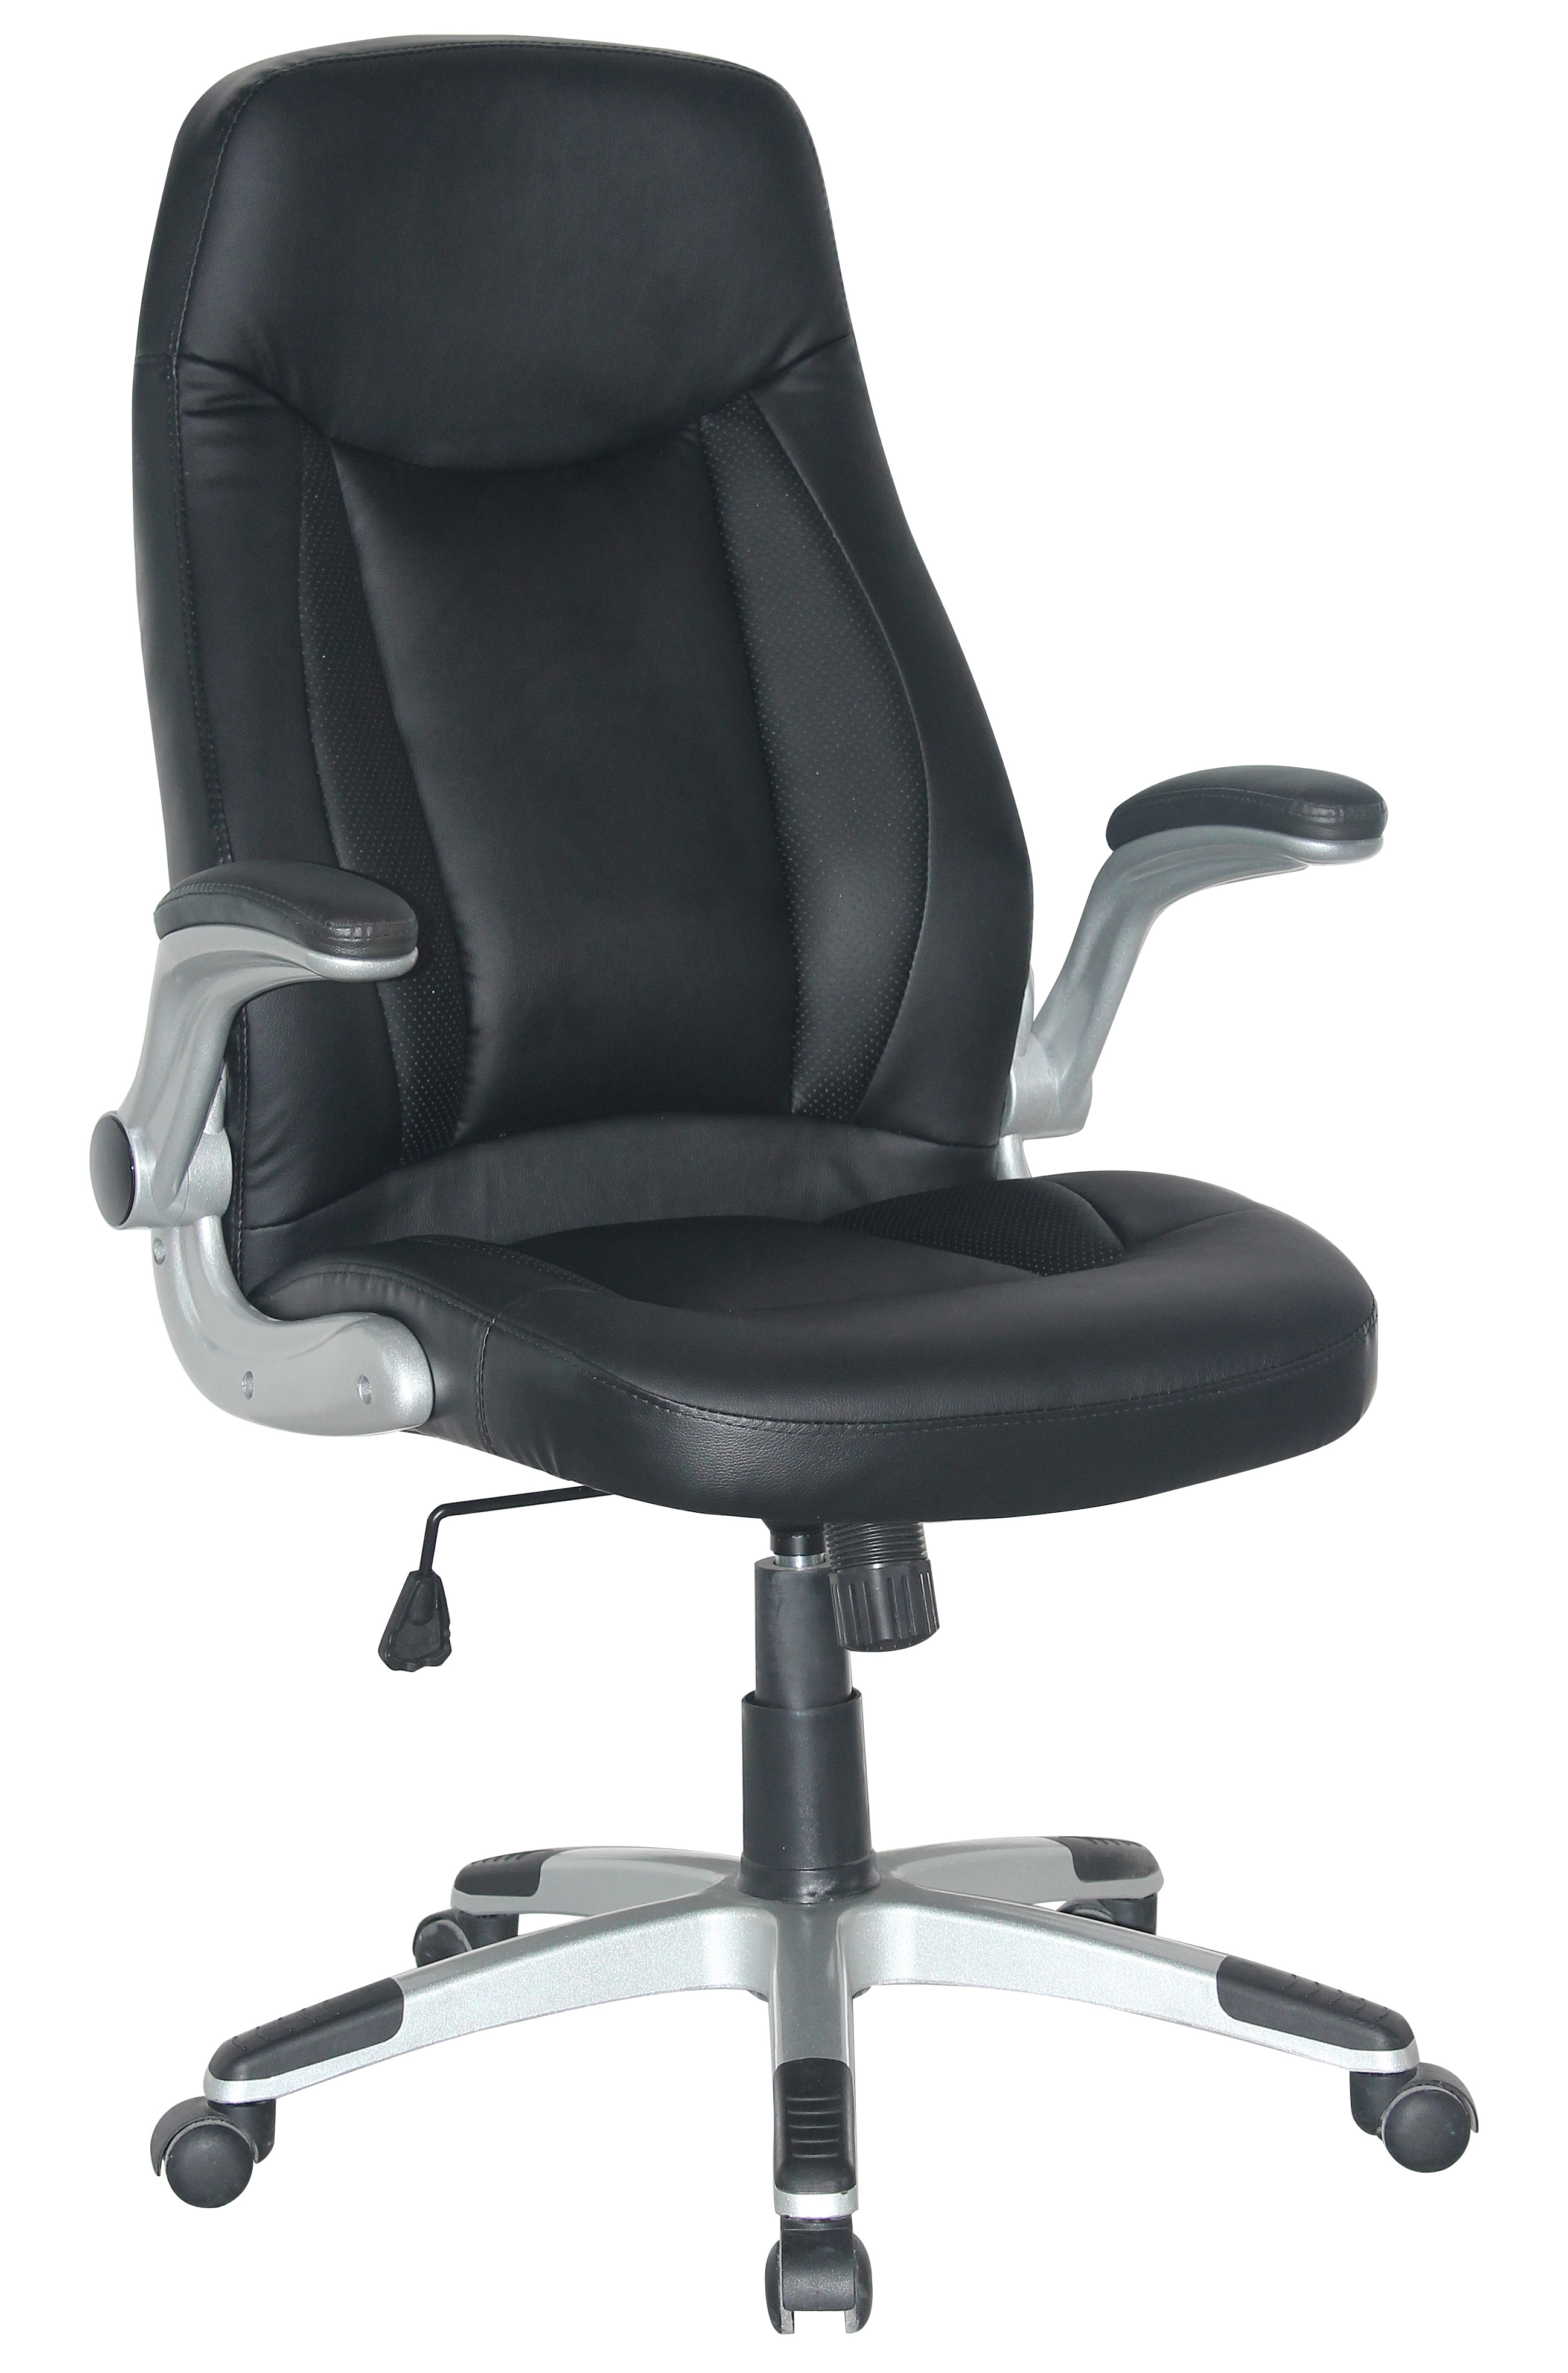 Model Style Hot Selling Black High Back Office Chair